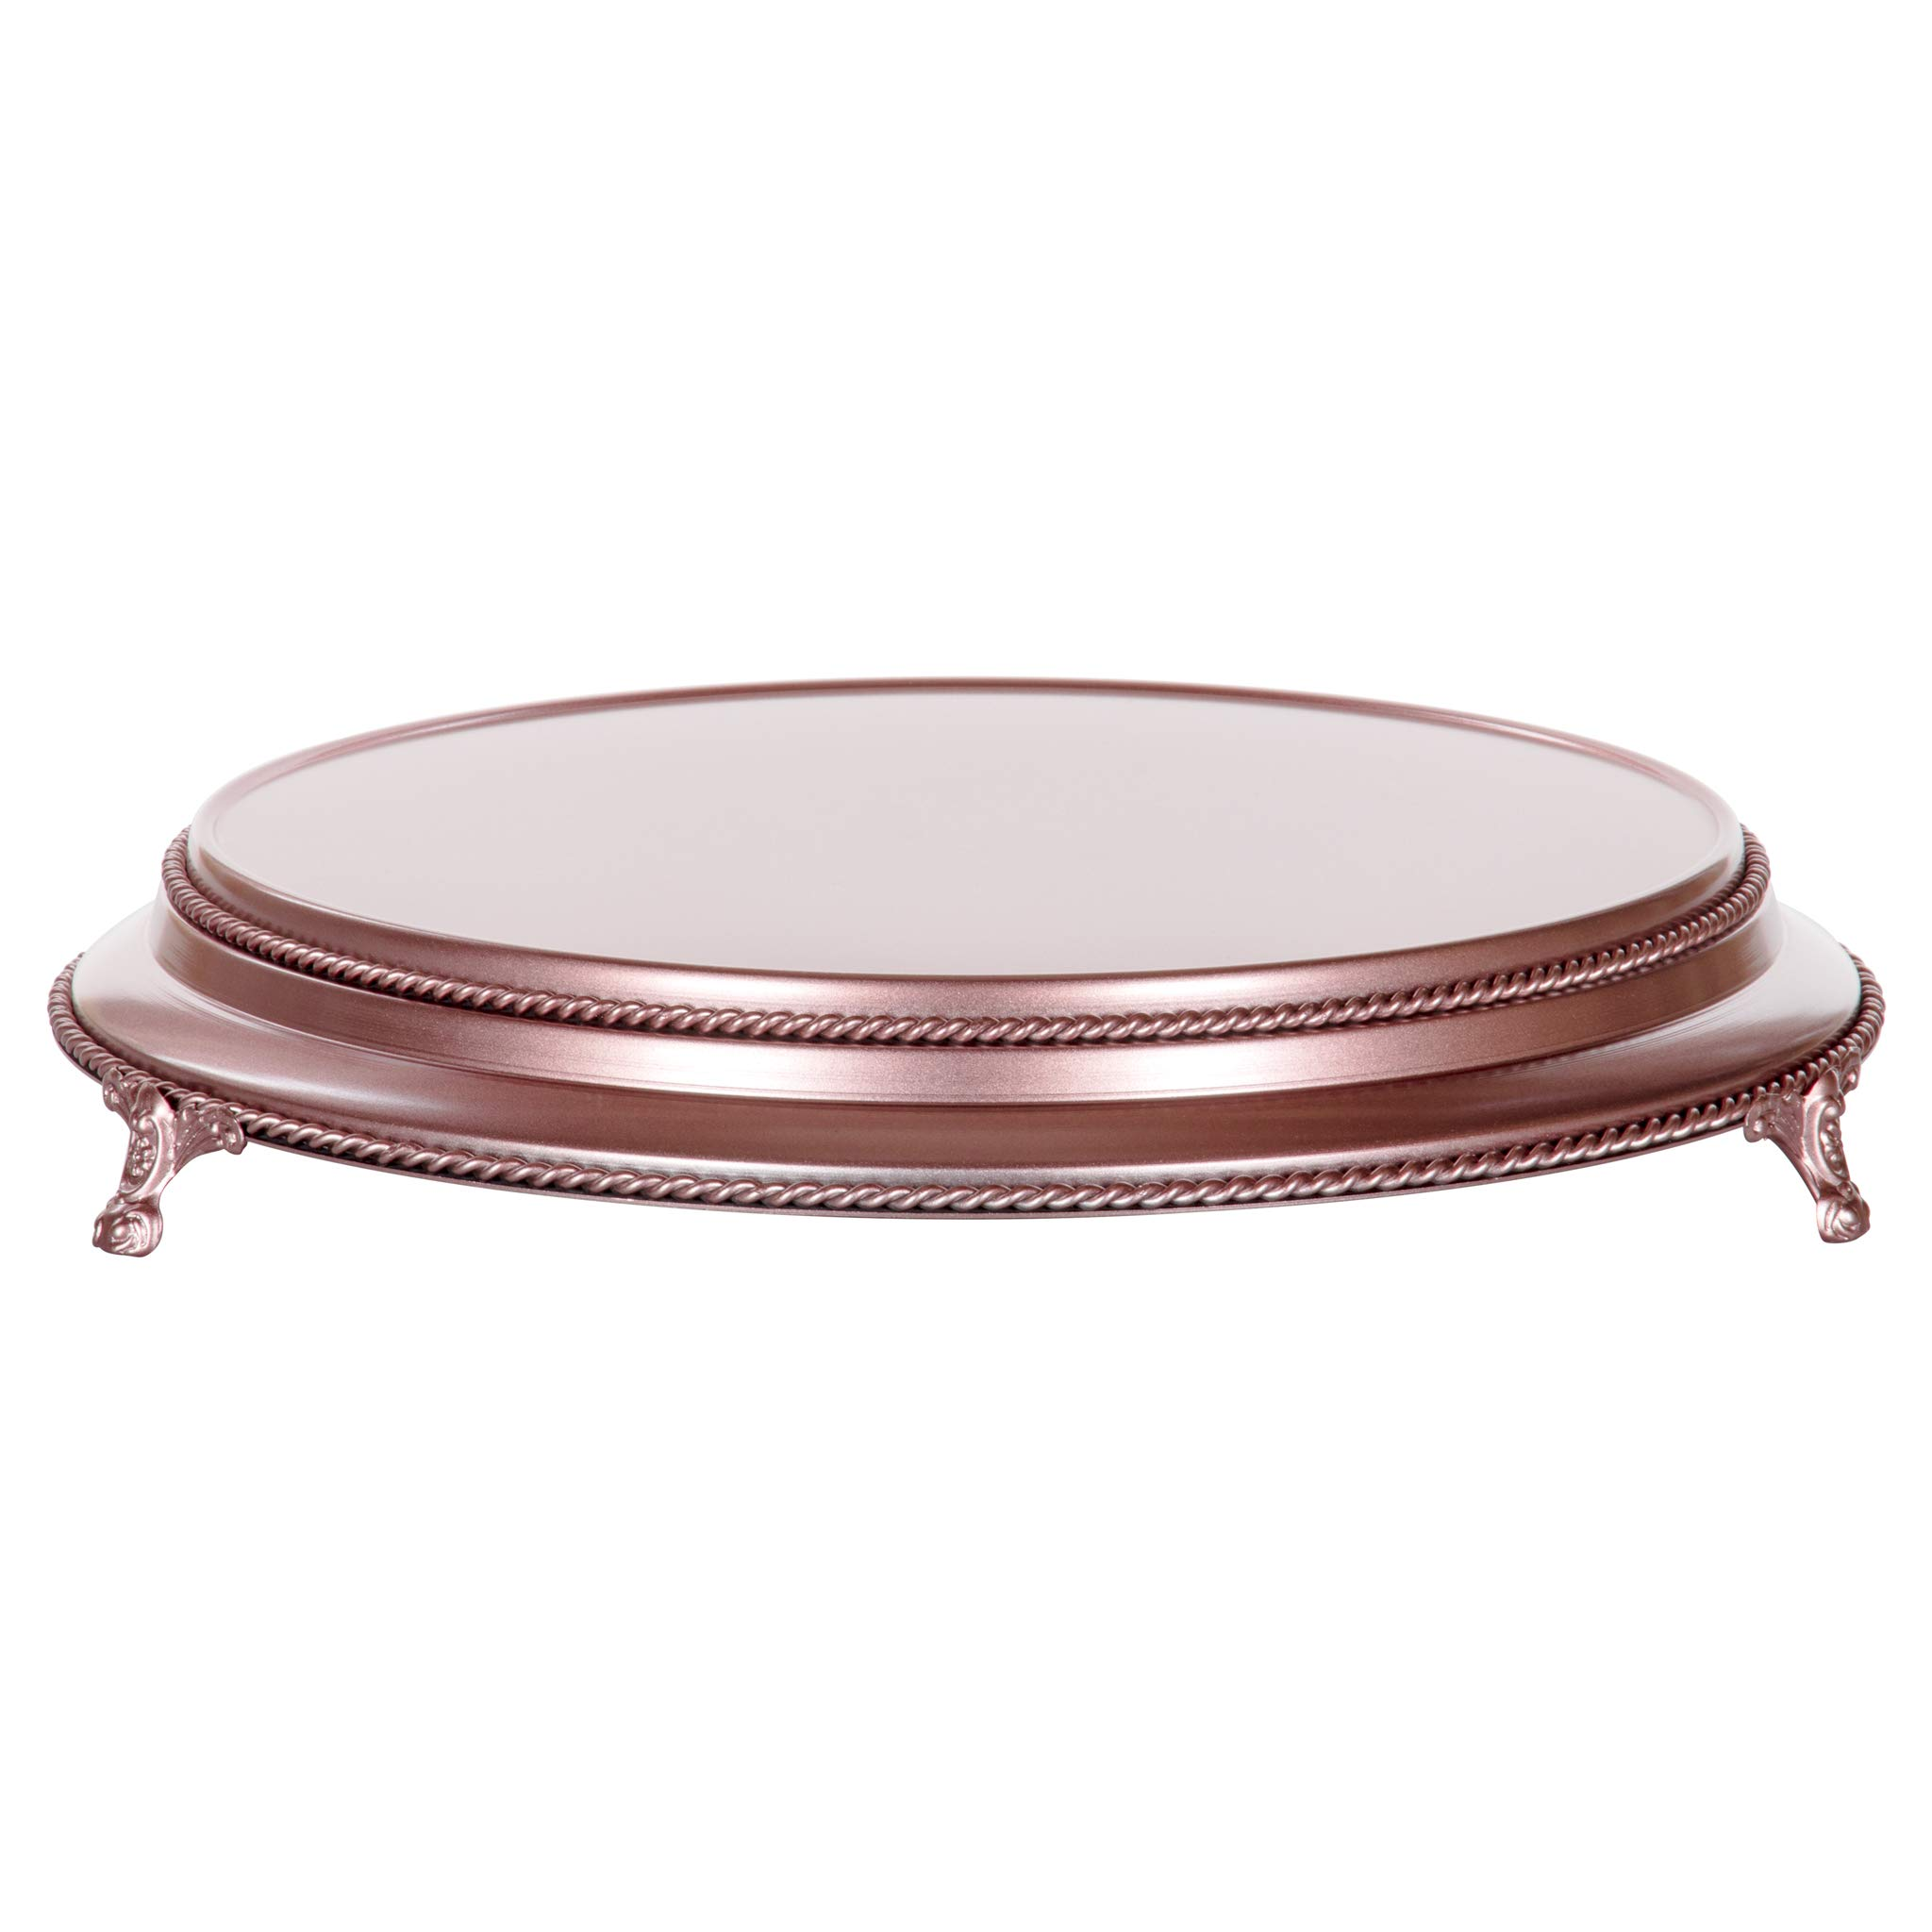 Amalfi Decor 16 Inch Cake Stand Plateau Riser, Large Dessert Cupcake Pastry Candy Display Plate for Wedding Event Birthday Party, Round Metal Pedestal Holder, Rose Gold